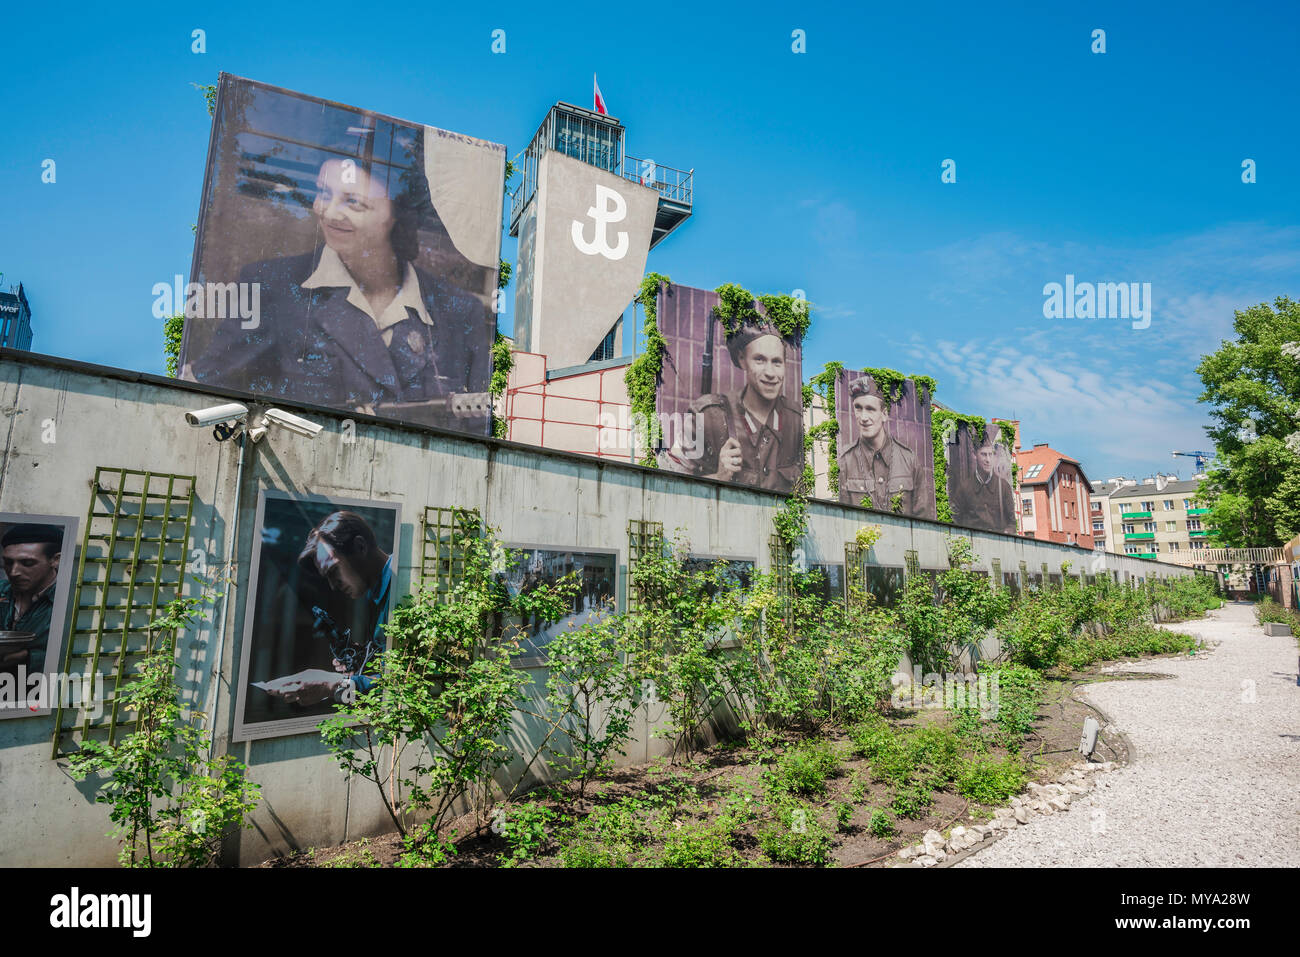 Warsaw Rising Museum, view of the museum rose garden overlooked by large portraits of resistance fighters of the uprising of 1944, Poland. - Stock Image